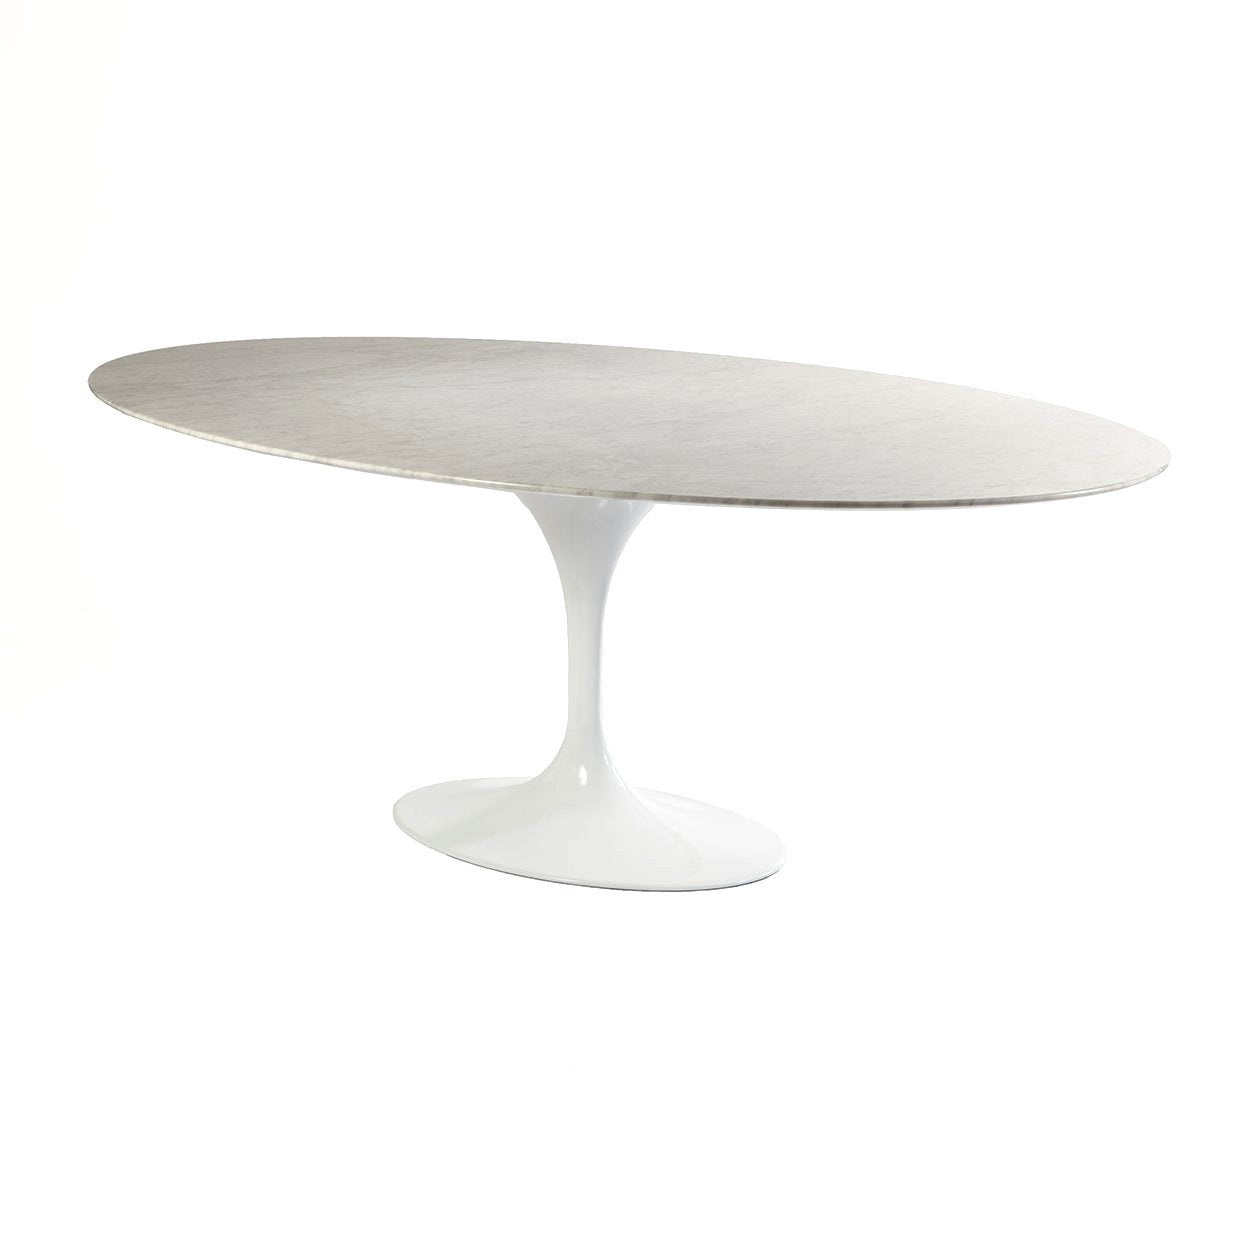 [RT335V70WHT] The Marble Tulip Dining Table 70